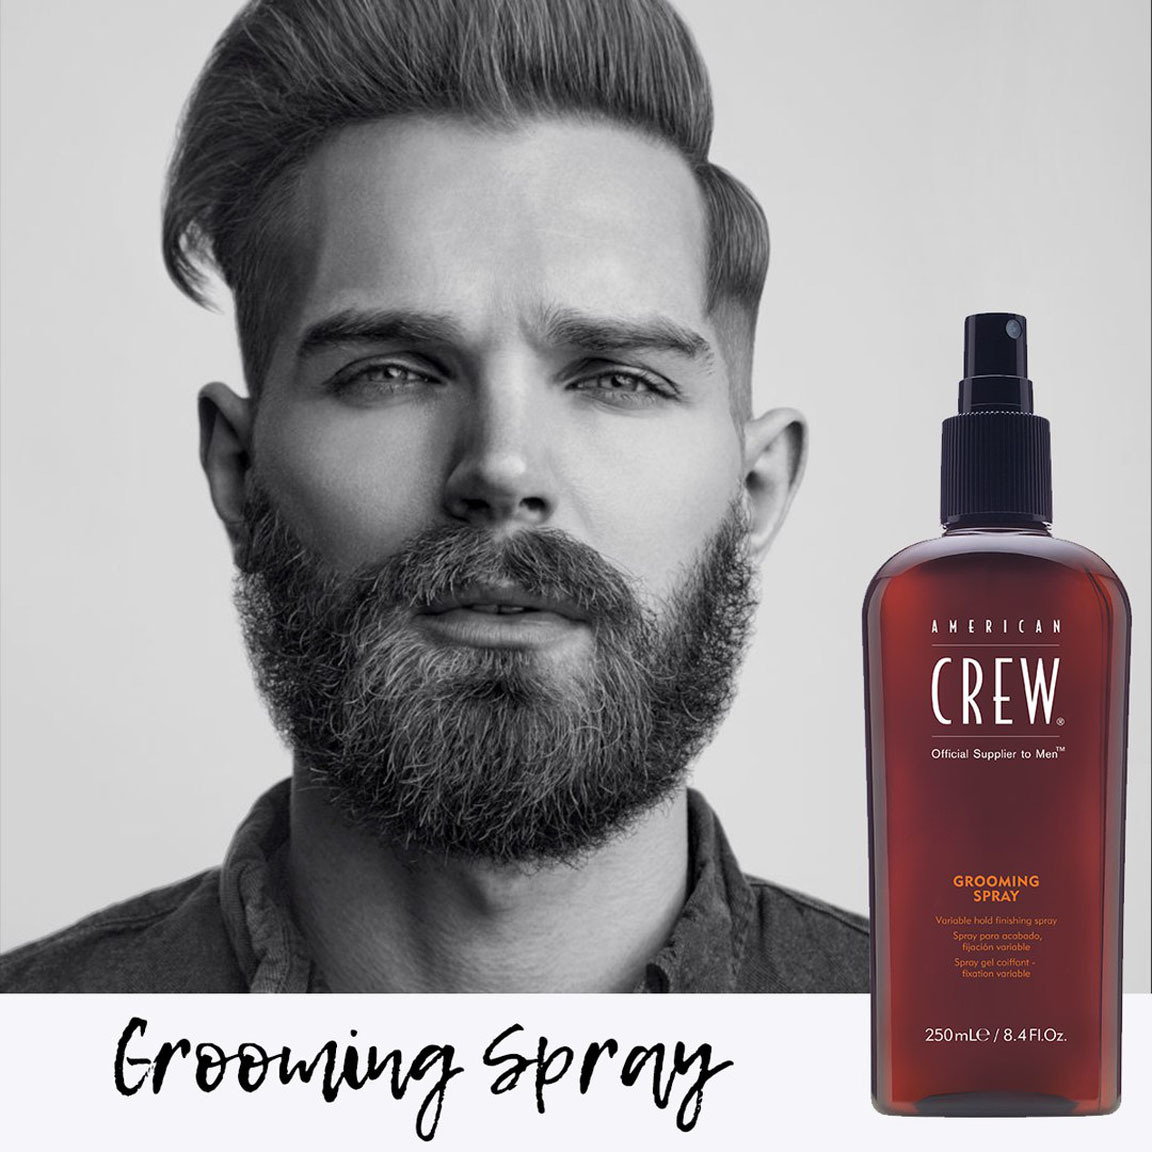 Image result for american crew grooming spray